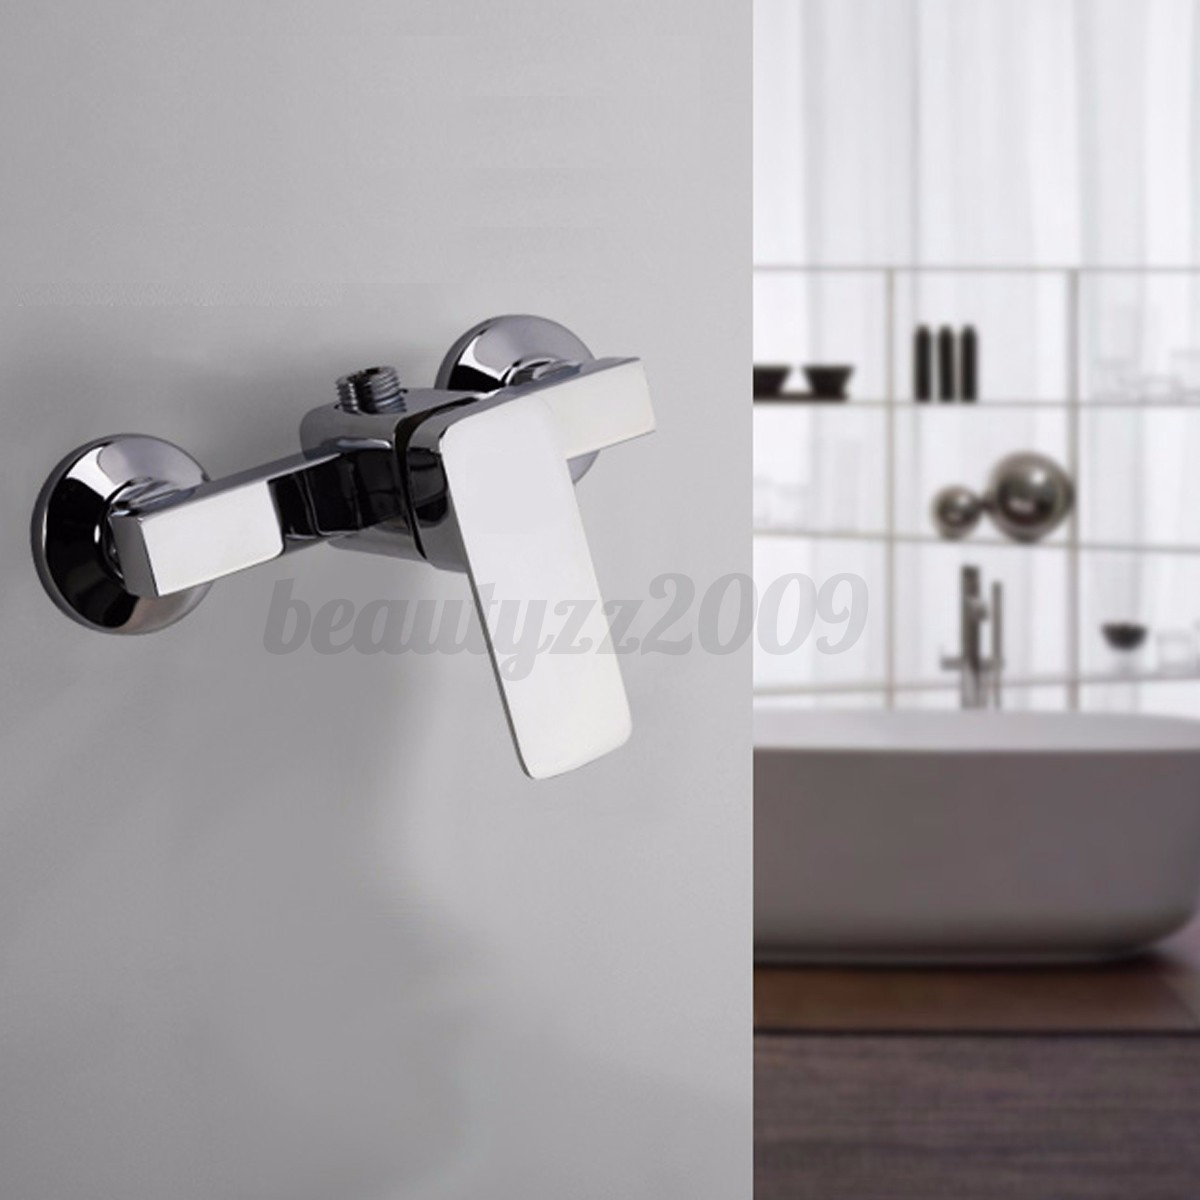 Bathroom Copper Kitchen Wall Mount Shower Head Bath Sink